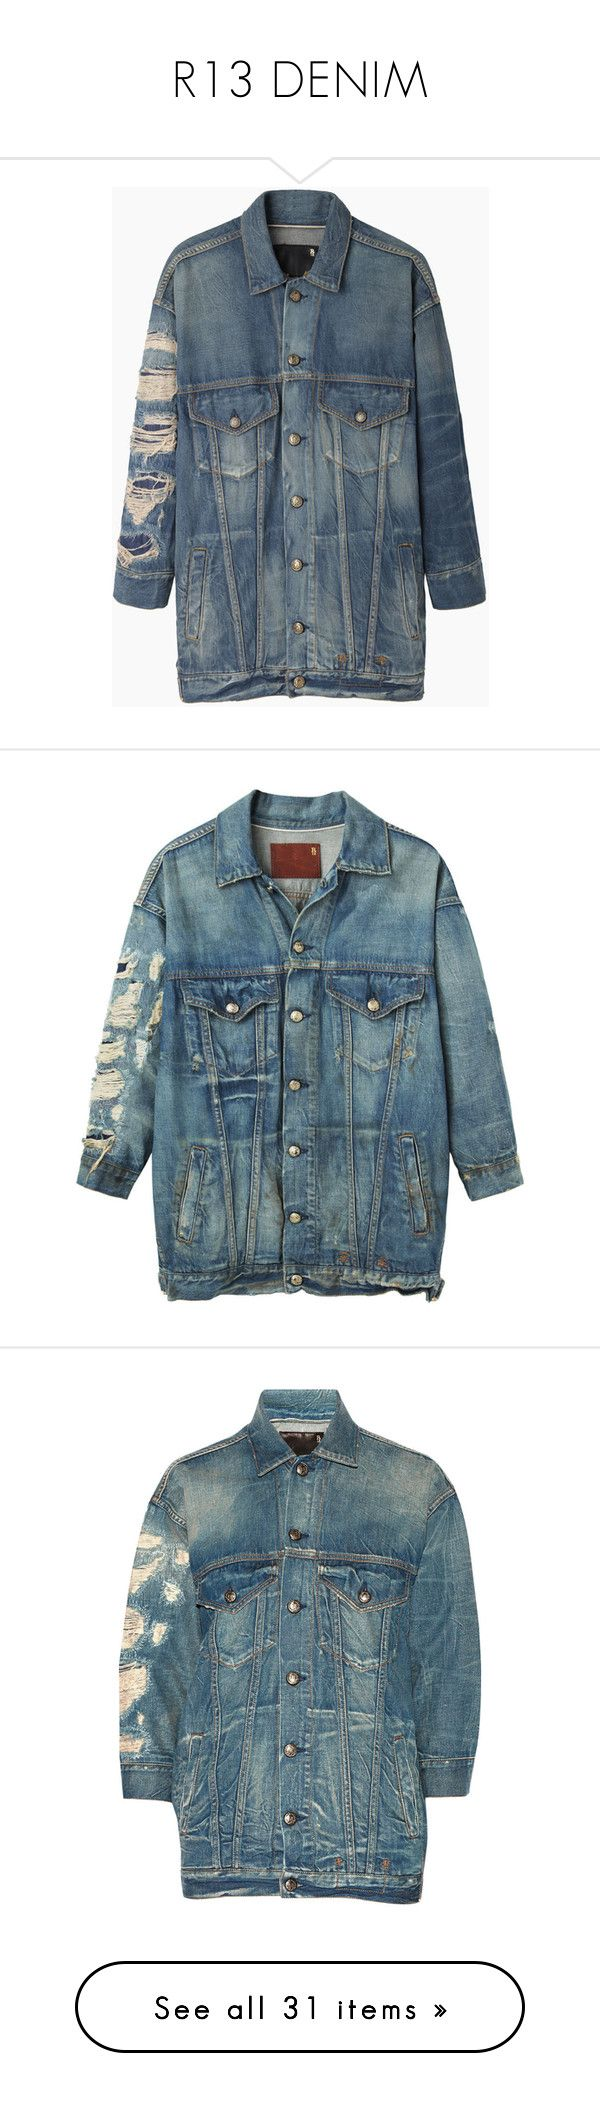 """""""R13 DENIM"""" by mungivore ❤ liked on Polyvore featuring outerwear, jackets, coats, coats & jackets, denim, blue jean jacket, bleached jean jacket, cropped denim jacket, light weight denim jacket and lightweight denim jacket"""